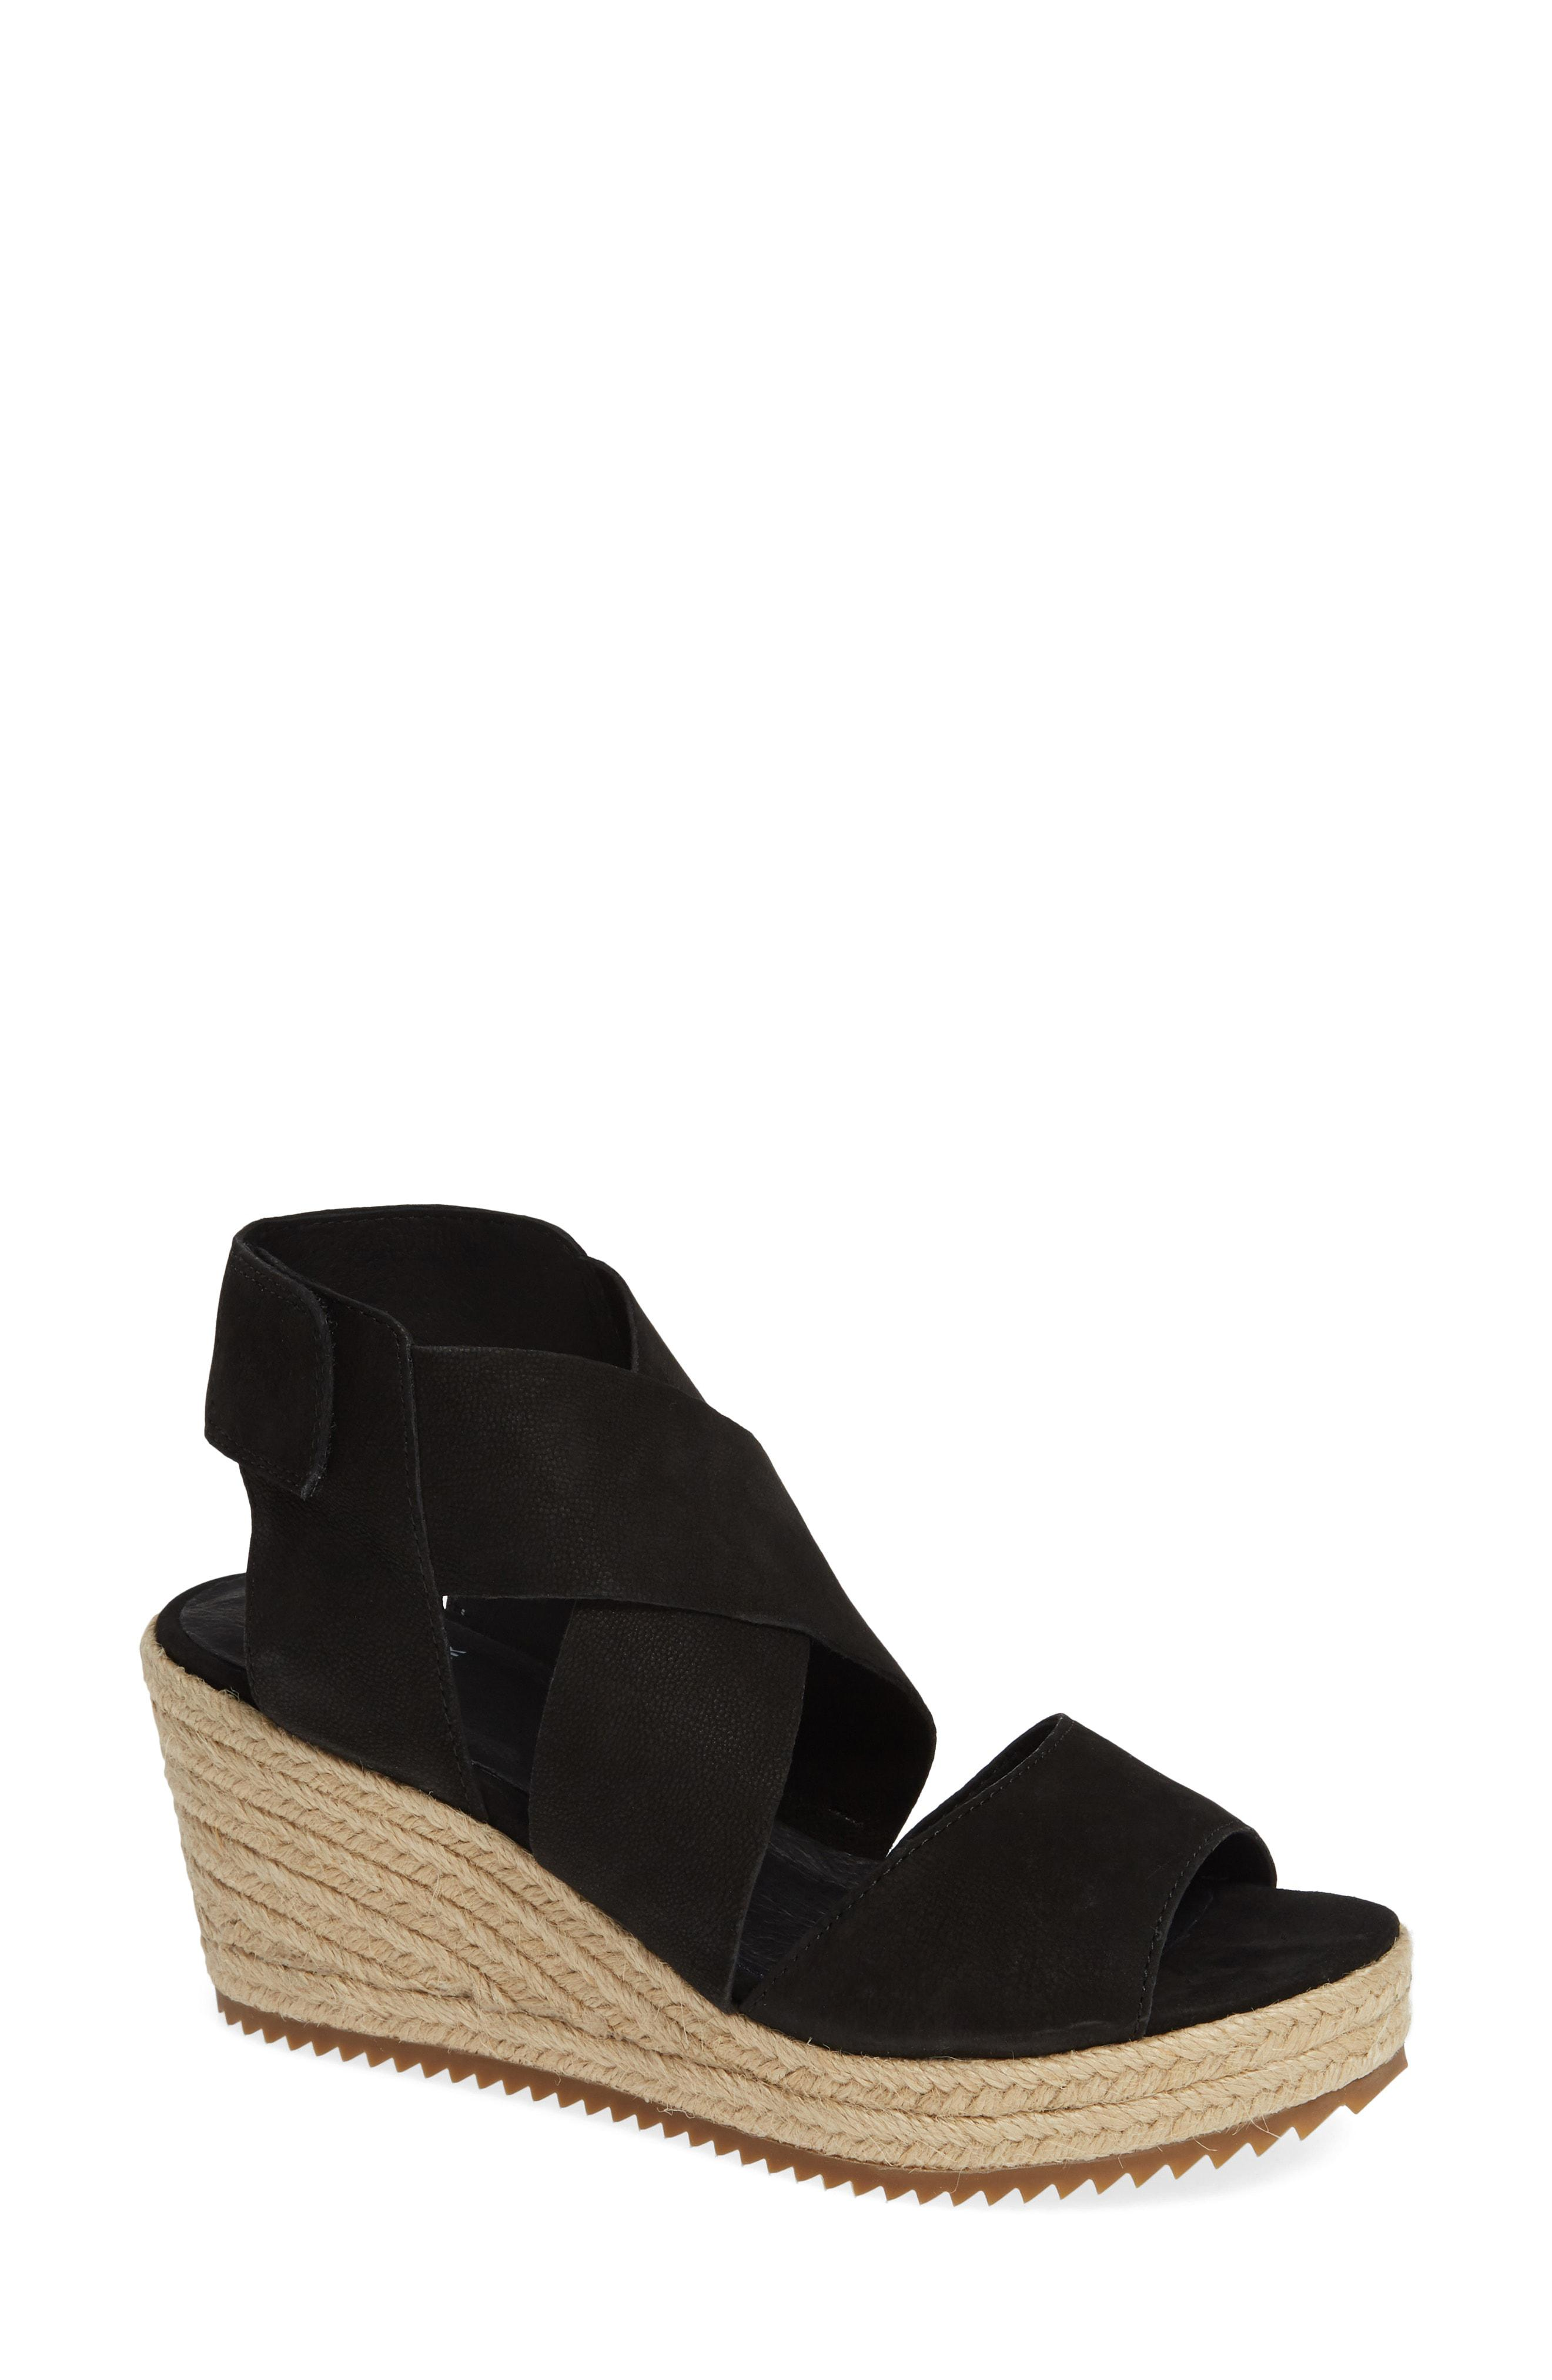 d00d3fa058e8 Lyst - Eileen Fisher  willow  Espadrille Wedge Sandal in Black ...